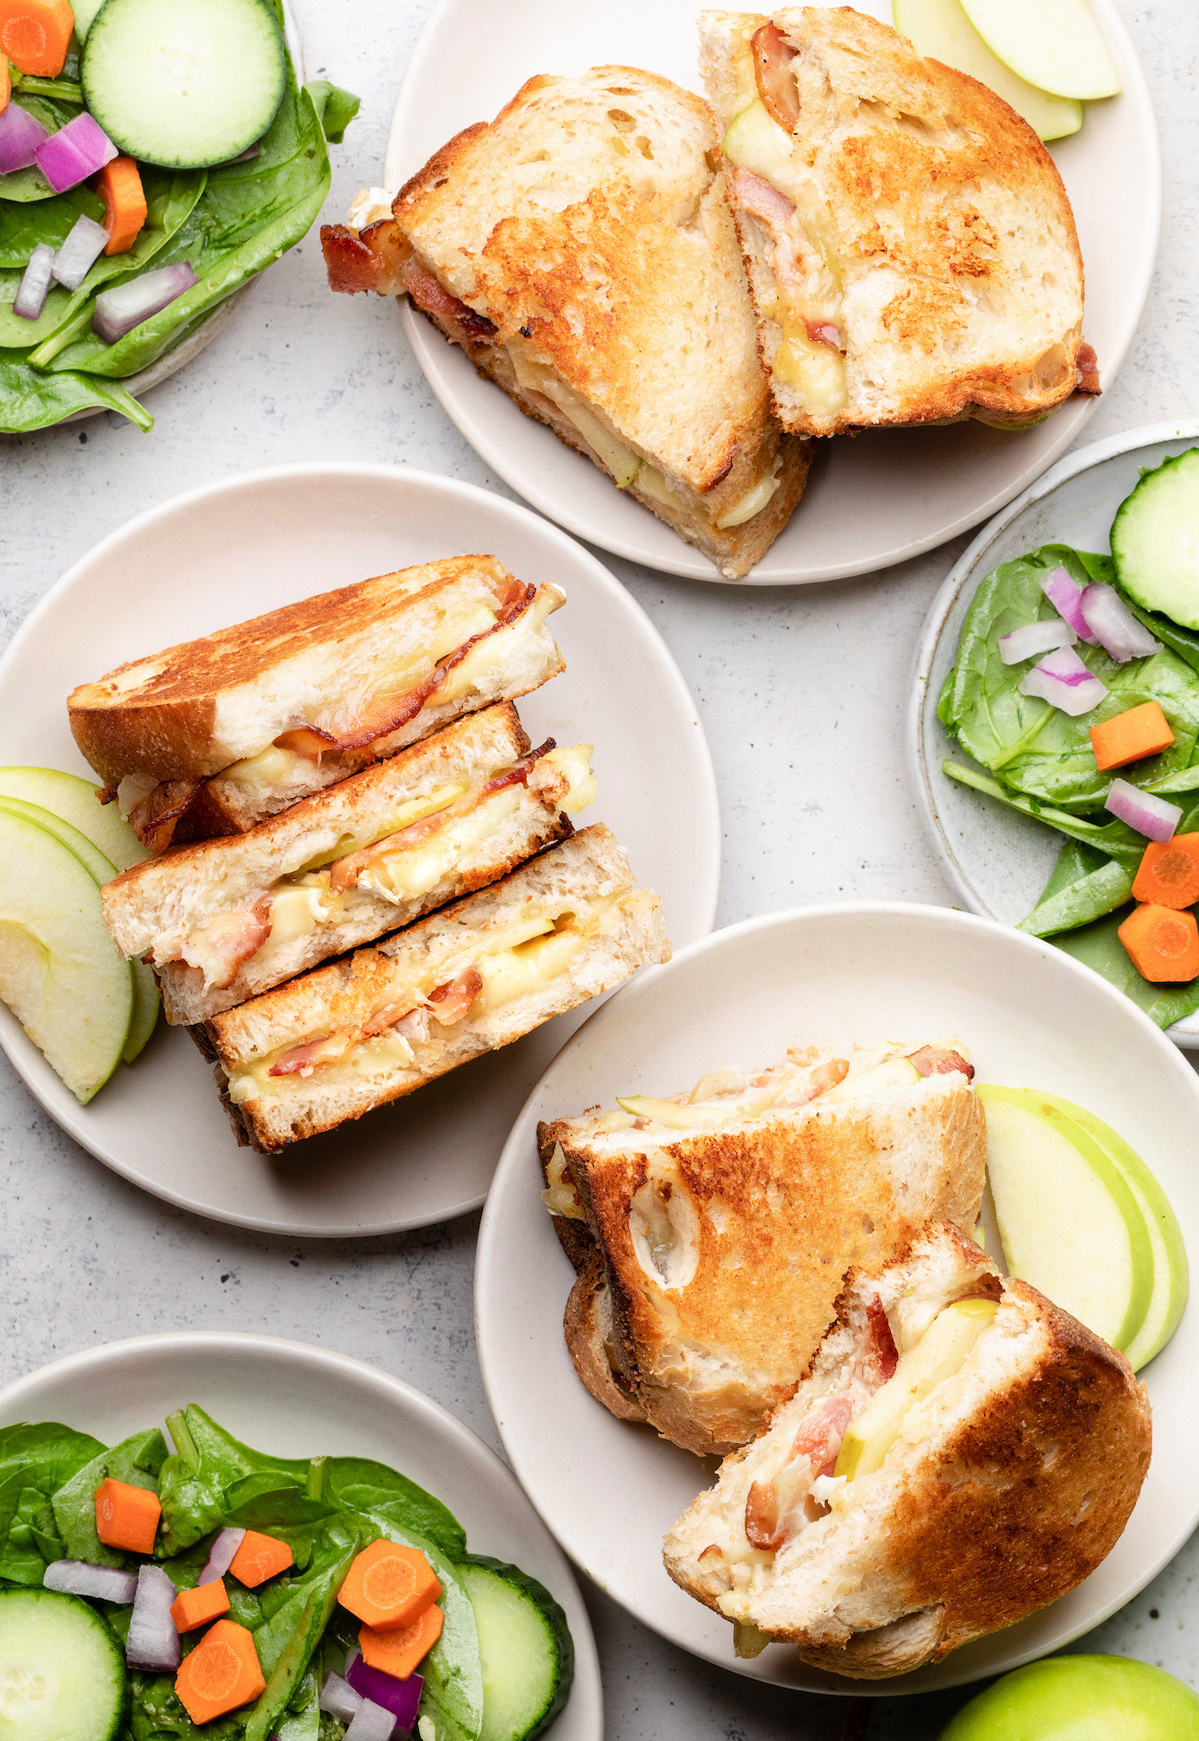 Three grilled cheese sandwiches on small white plates, next to small bowls of green salad.